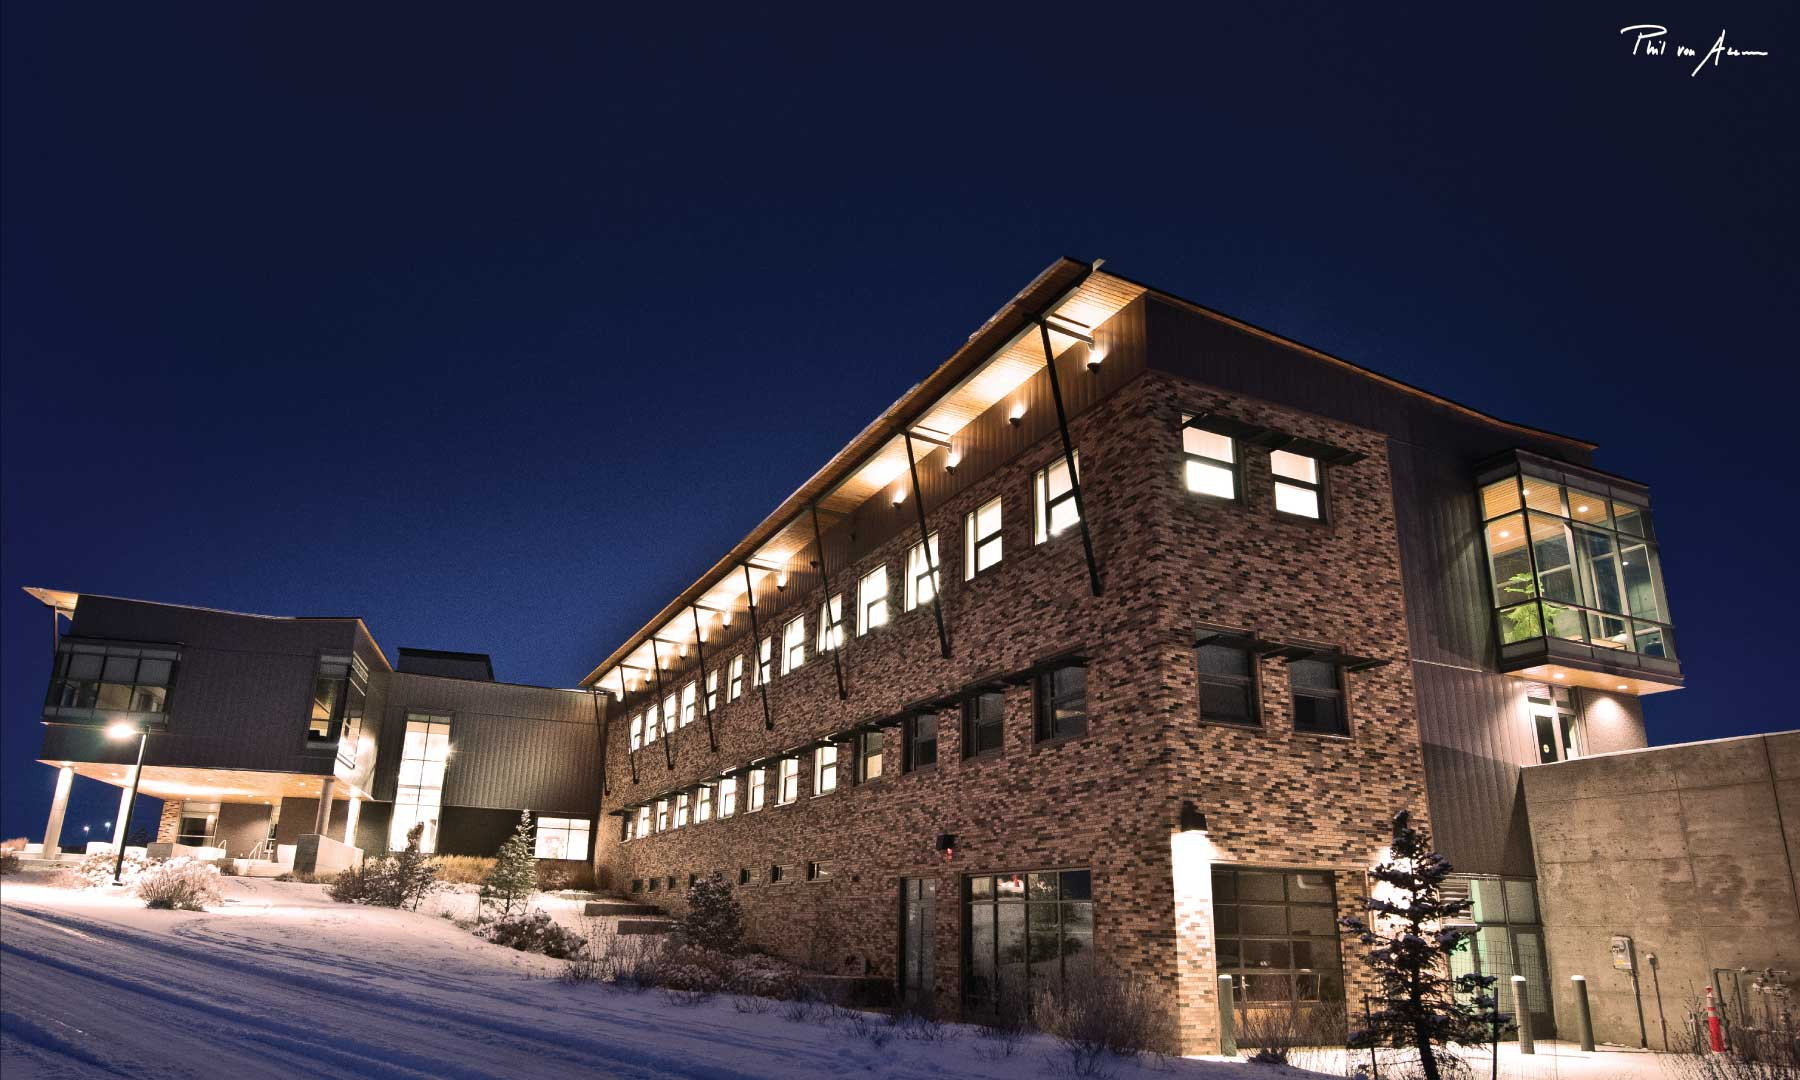 Exterior of CNCC in the winter at night all lit up.